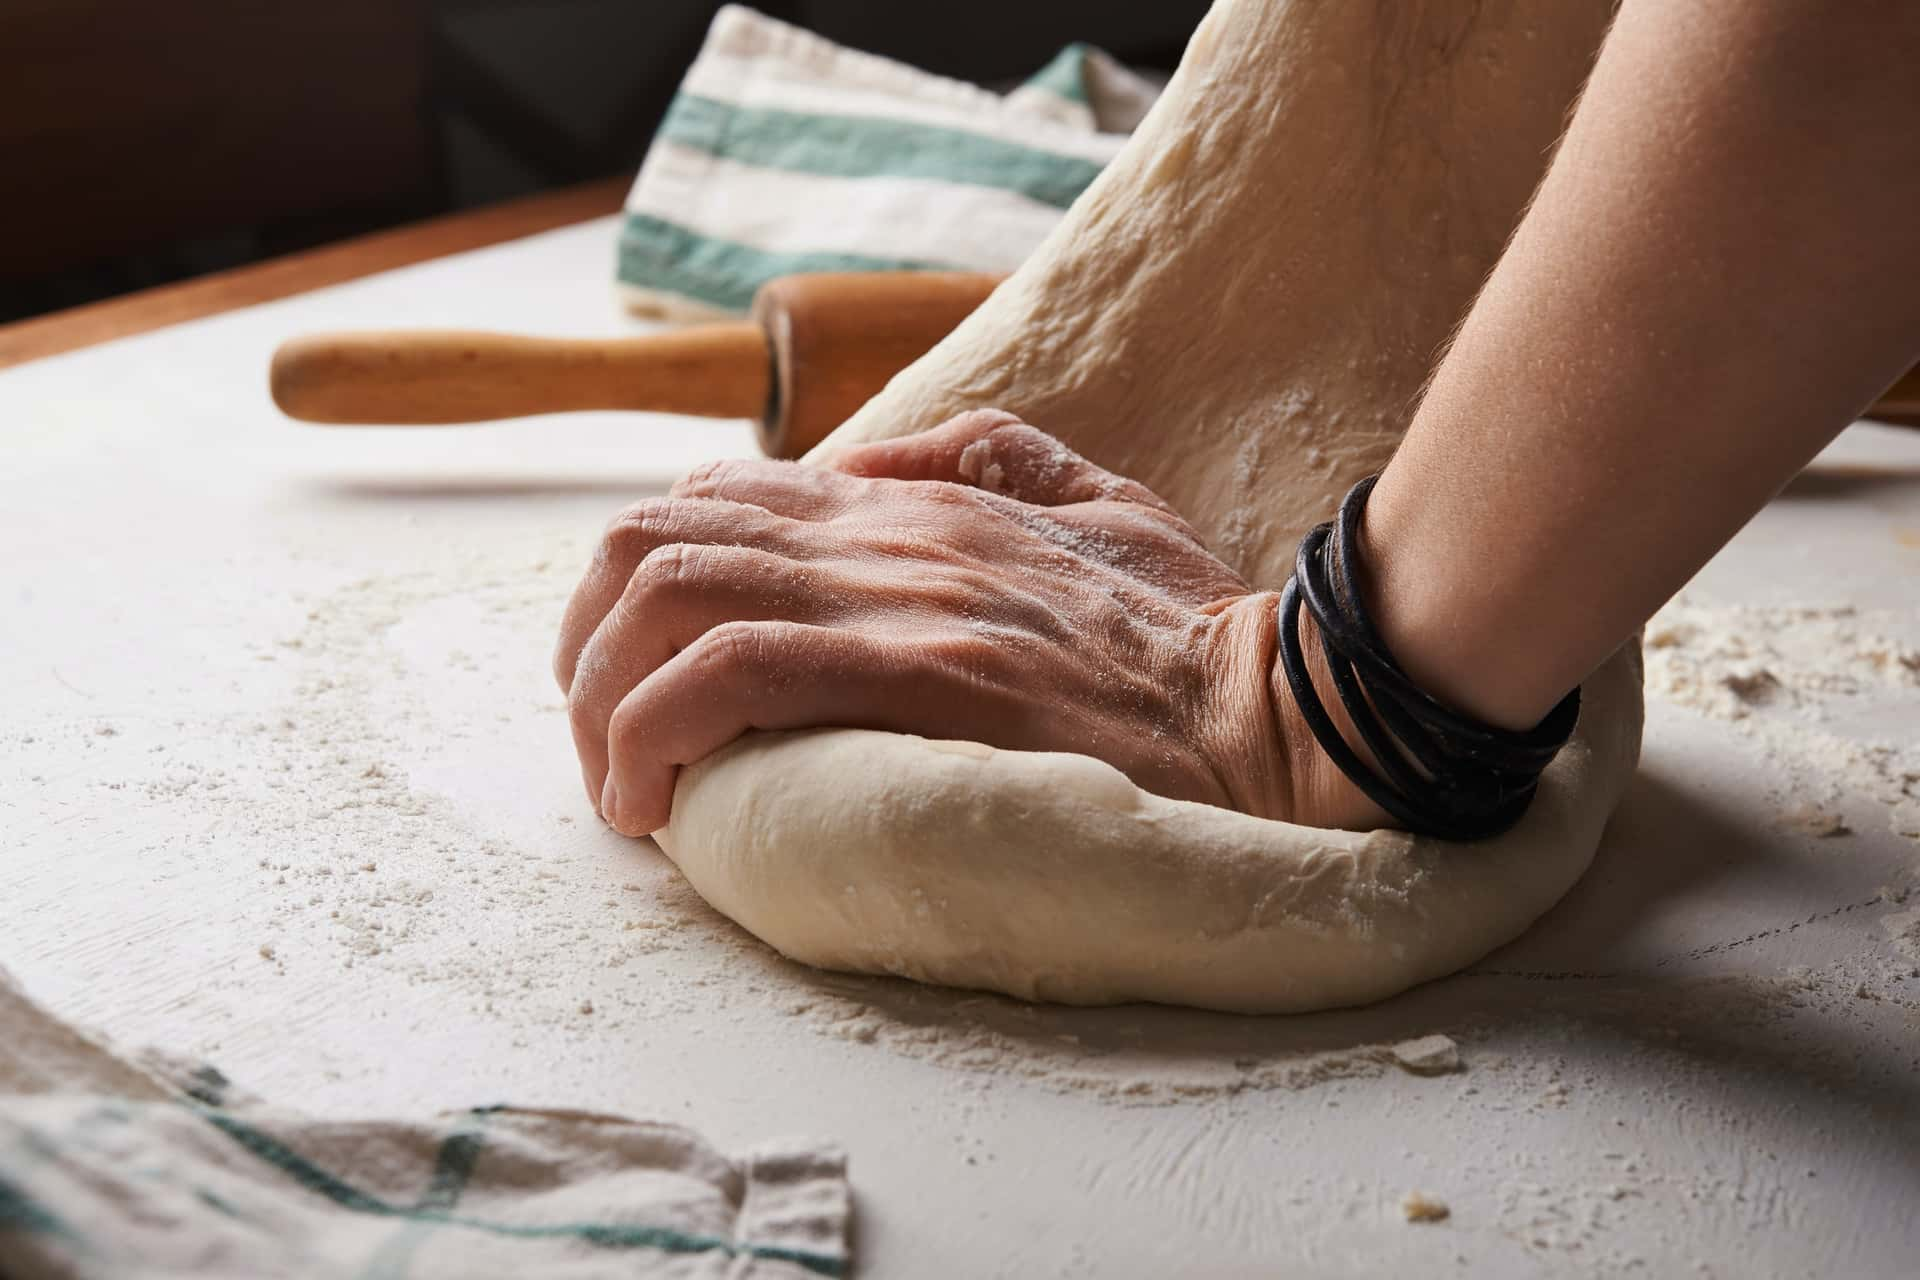 Bread dough being kneaded on a kitchen counter